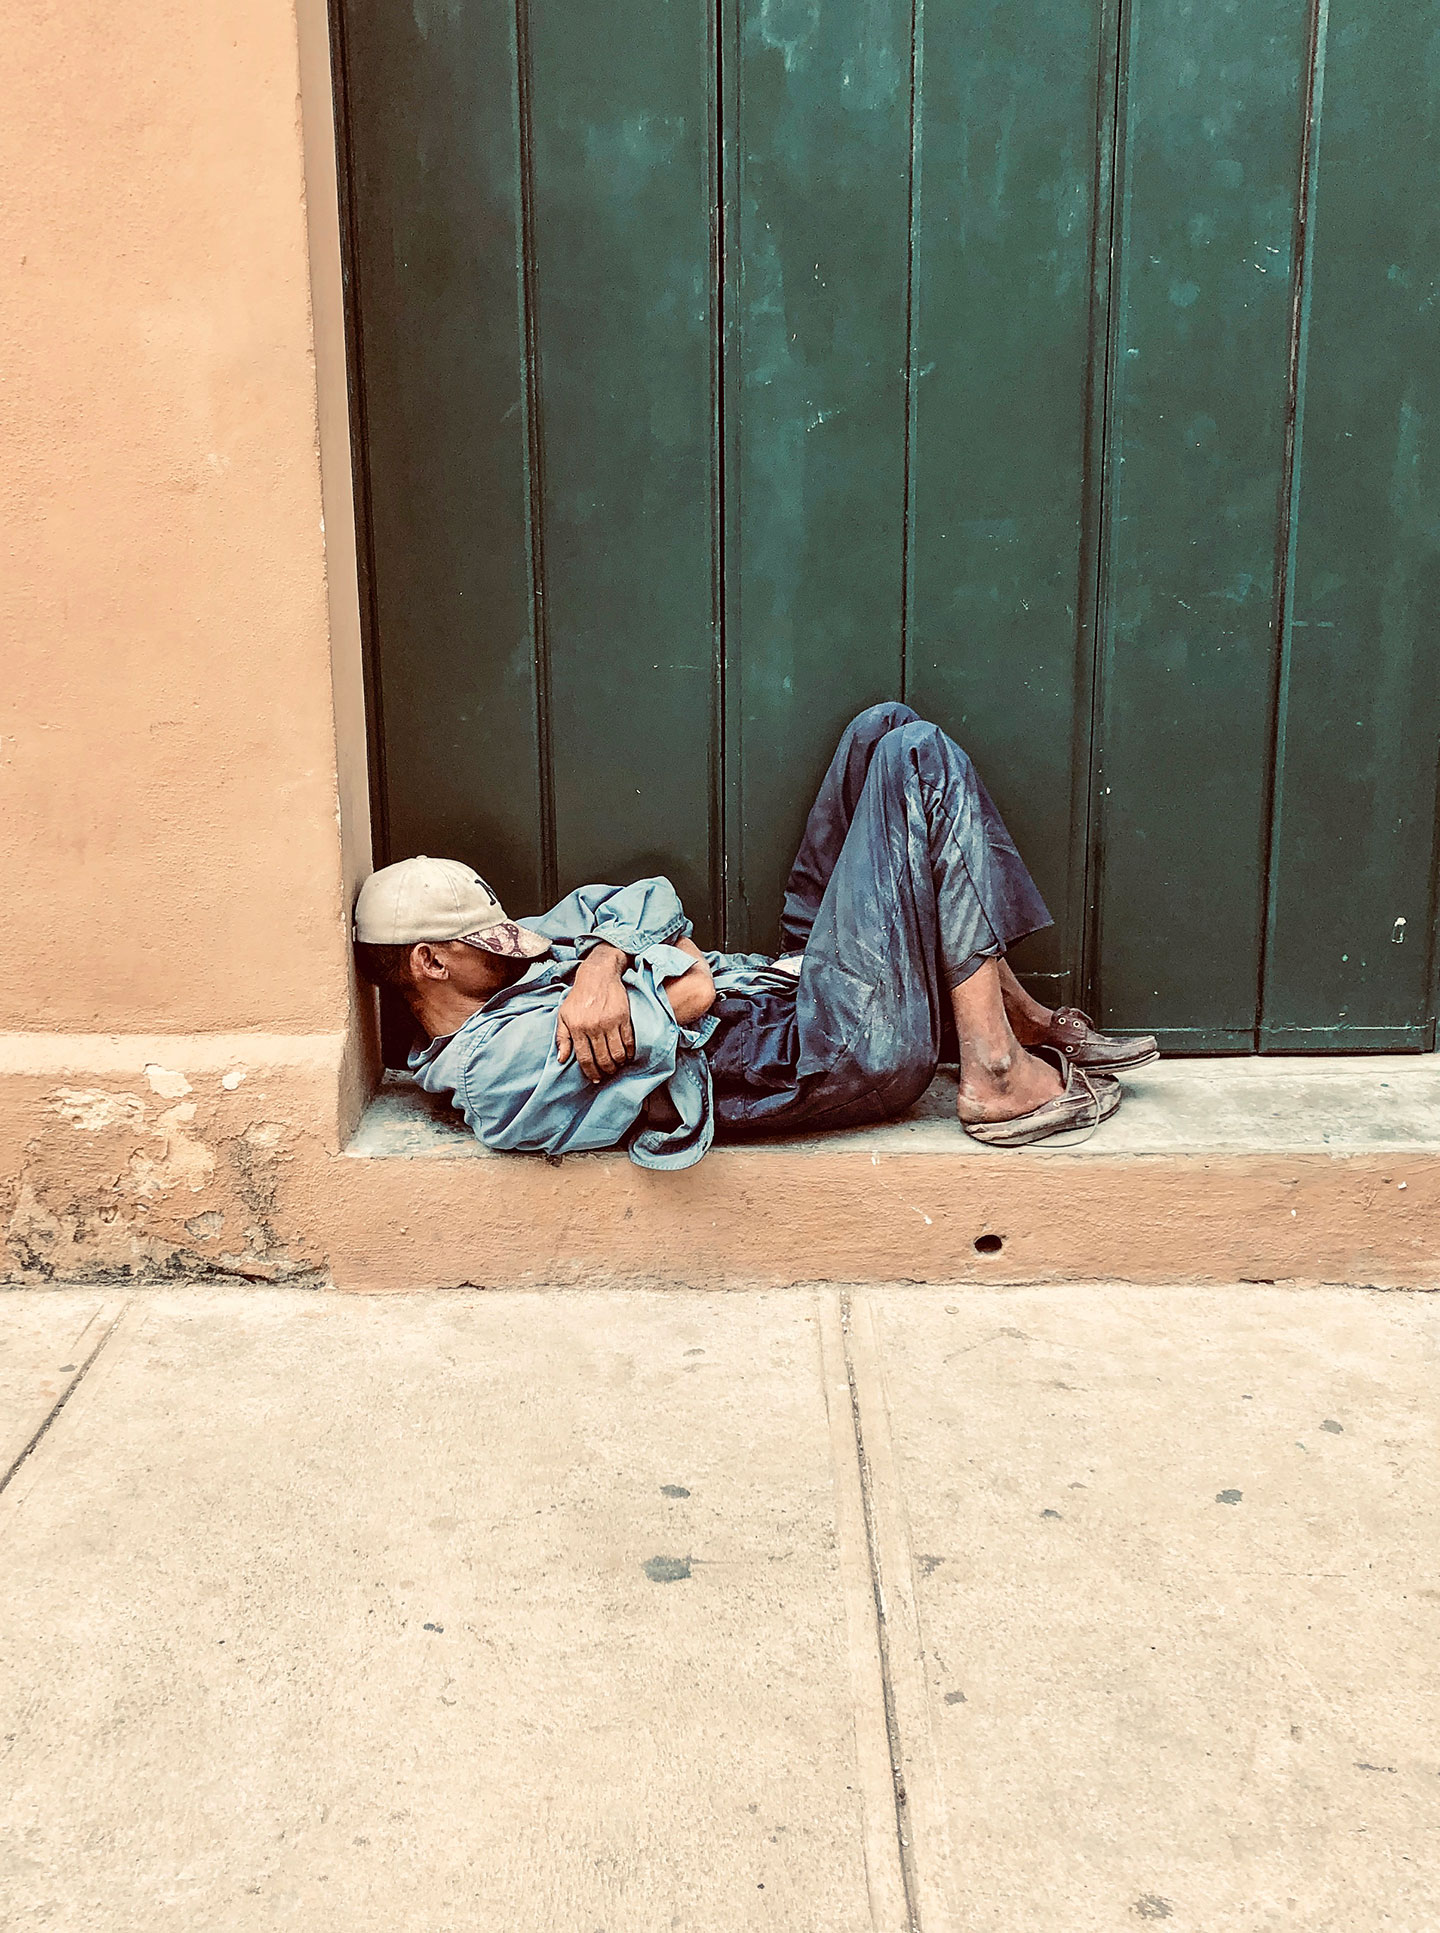 Homeless sleeping on the street in Havana, Cuba